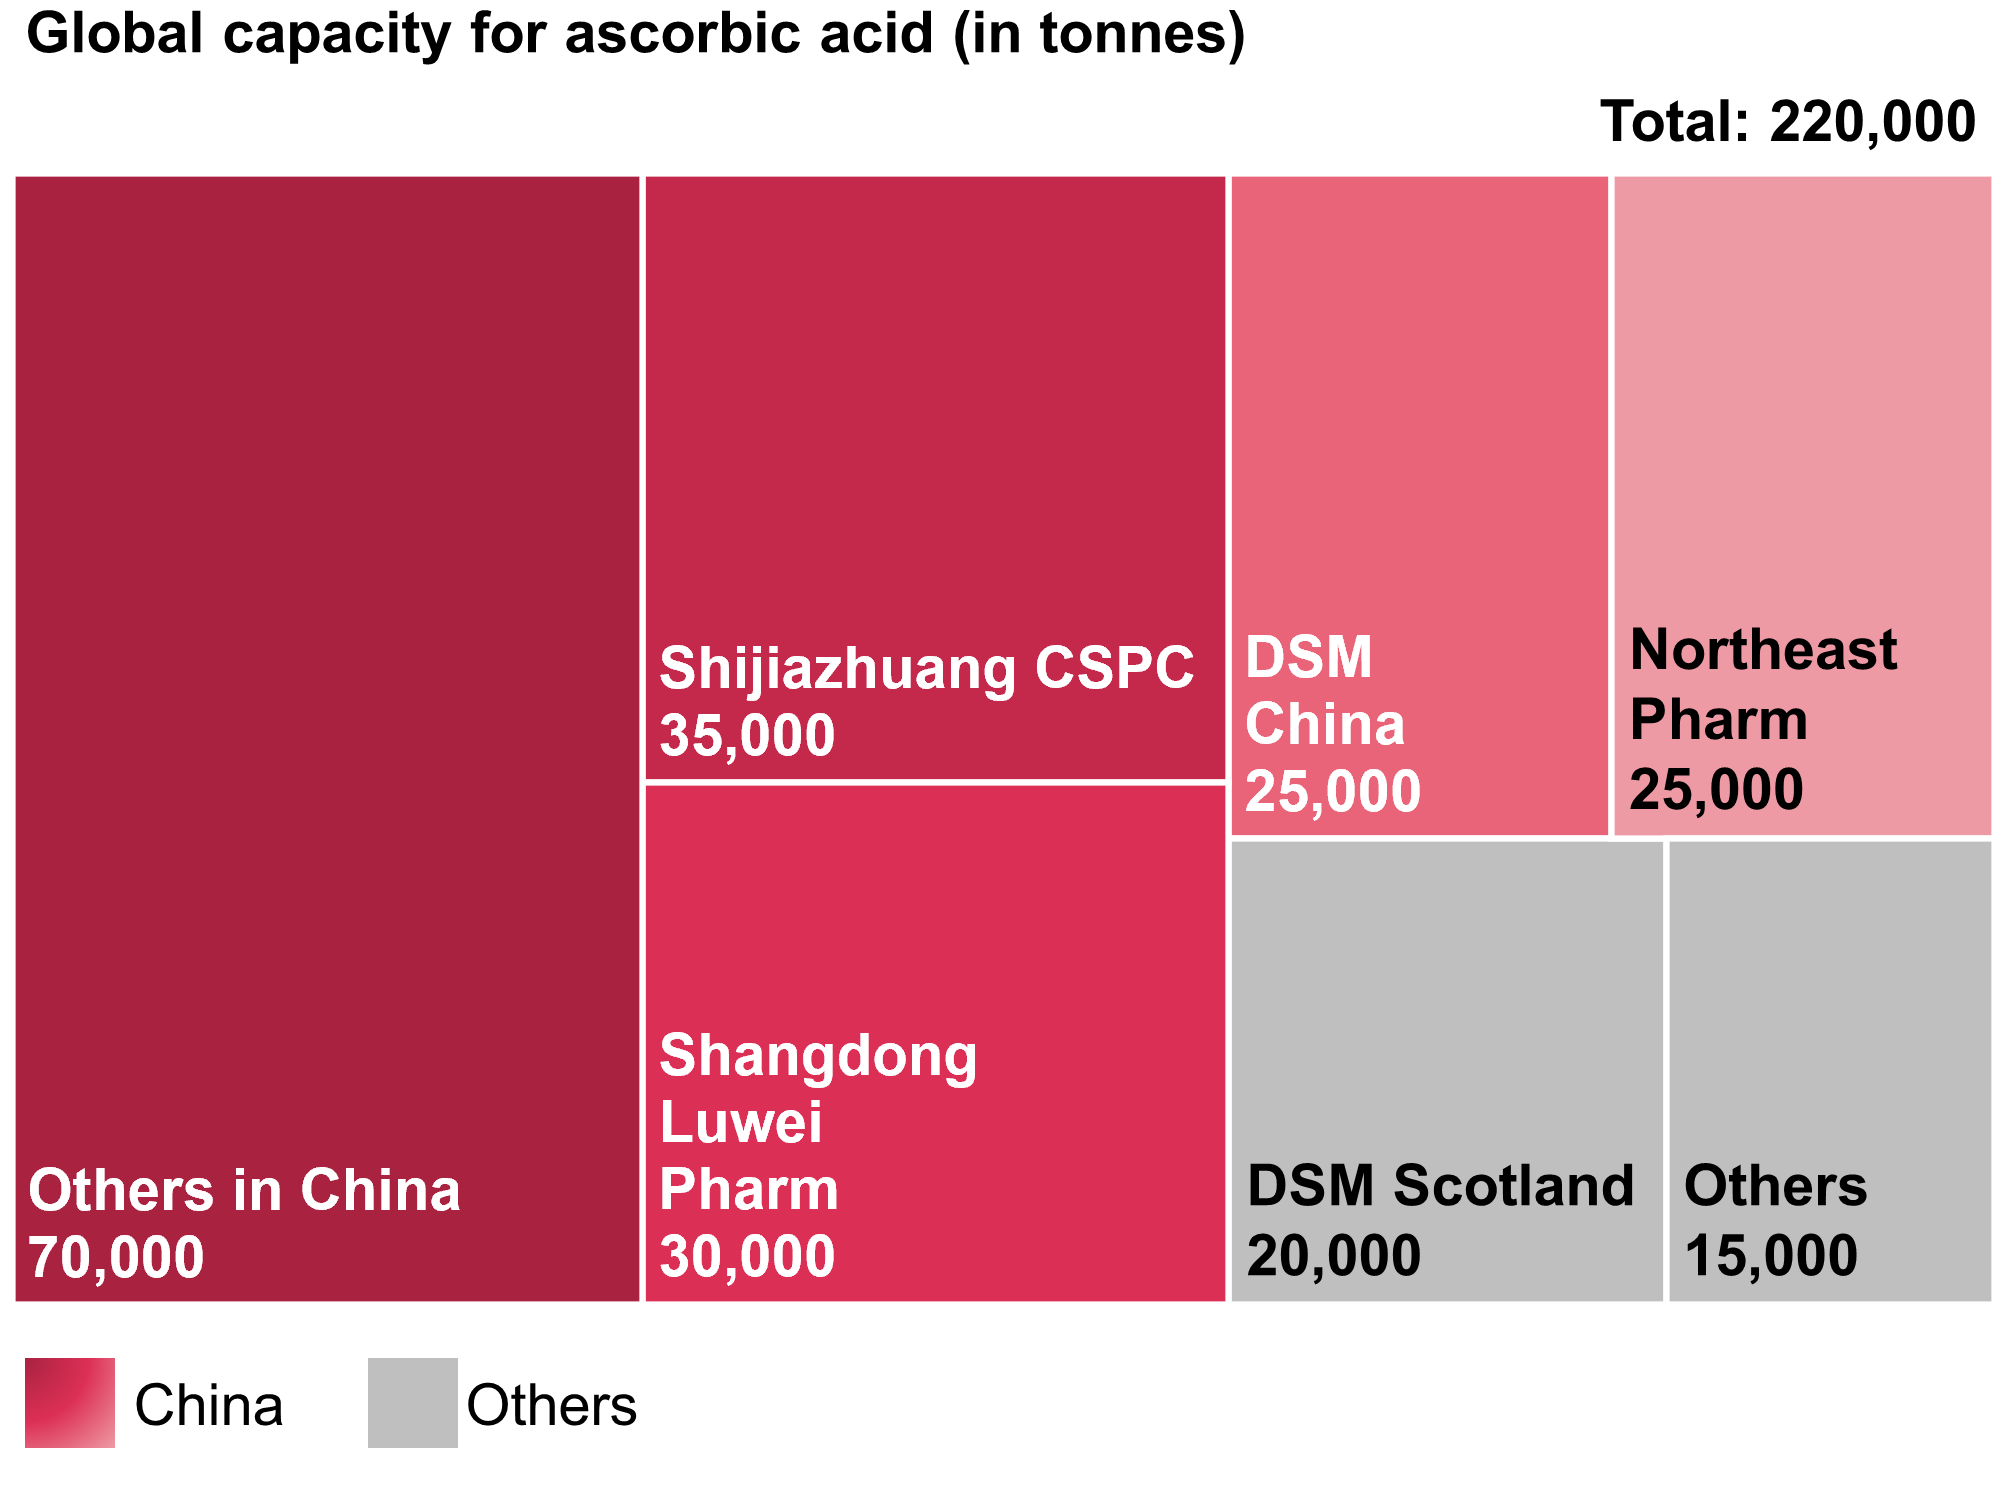 Global capacity for ascorbic acid (vitamin C)